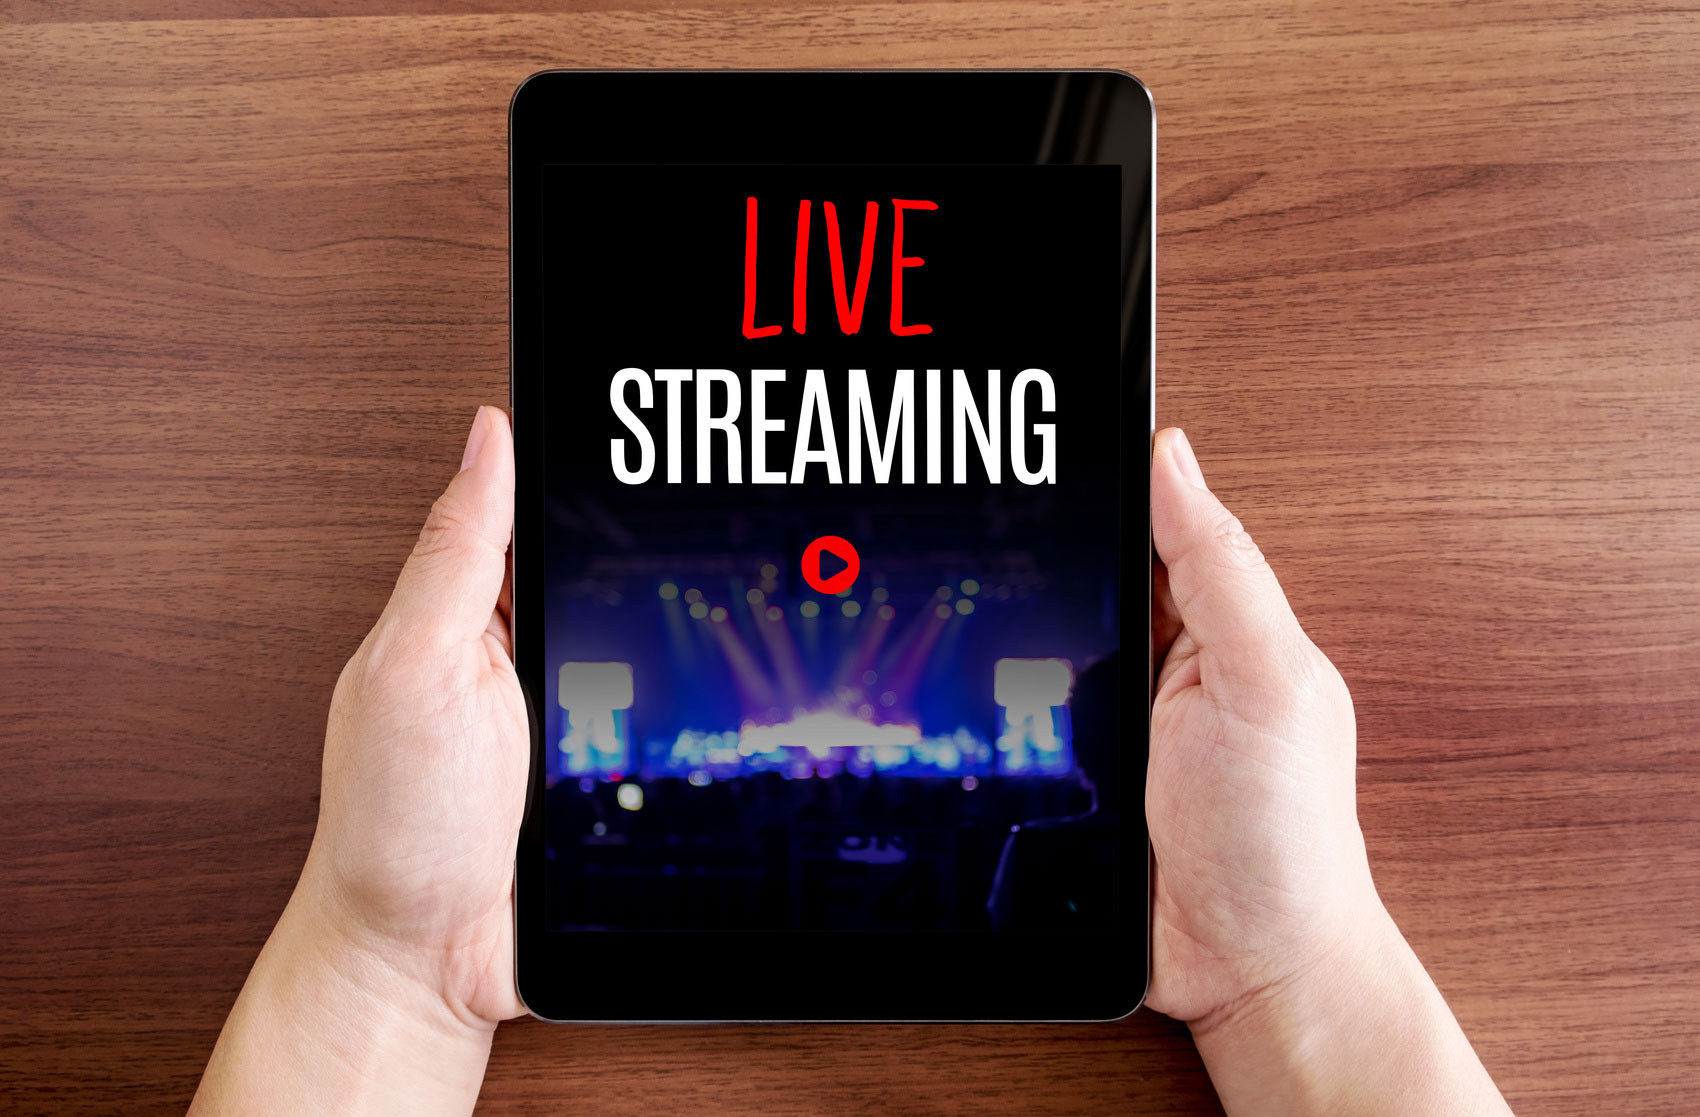 live-streaming-formatos-aspectos-tecnicos.jpg